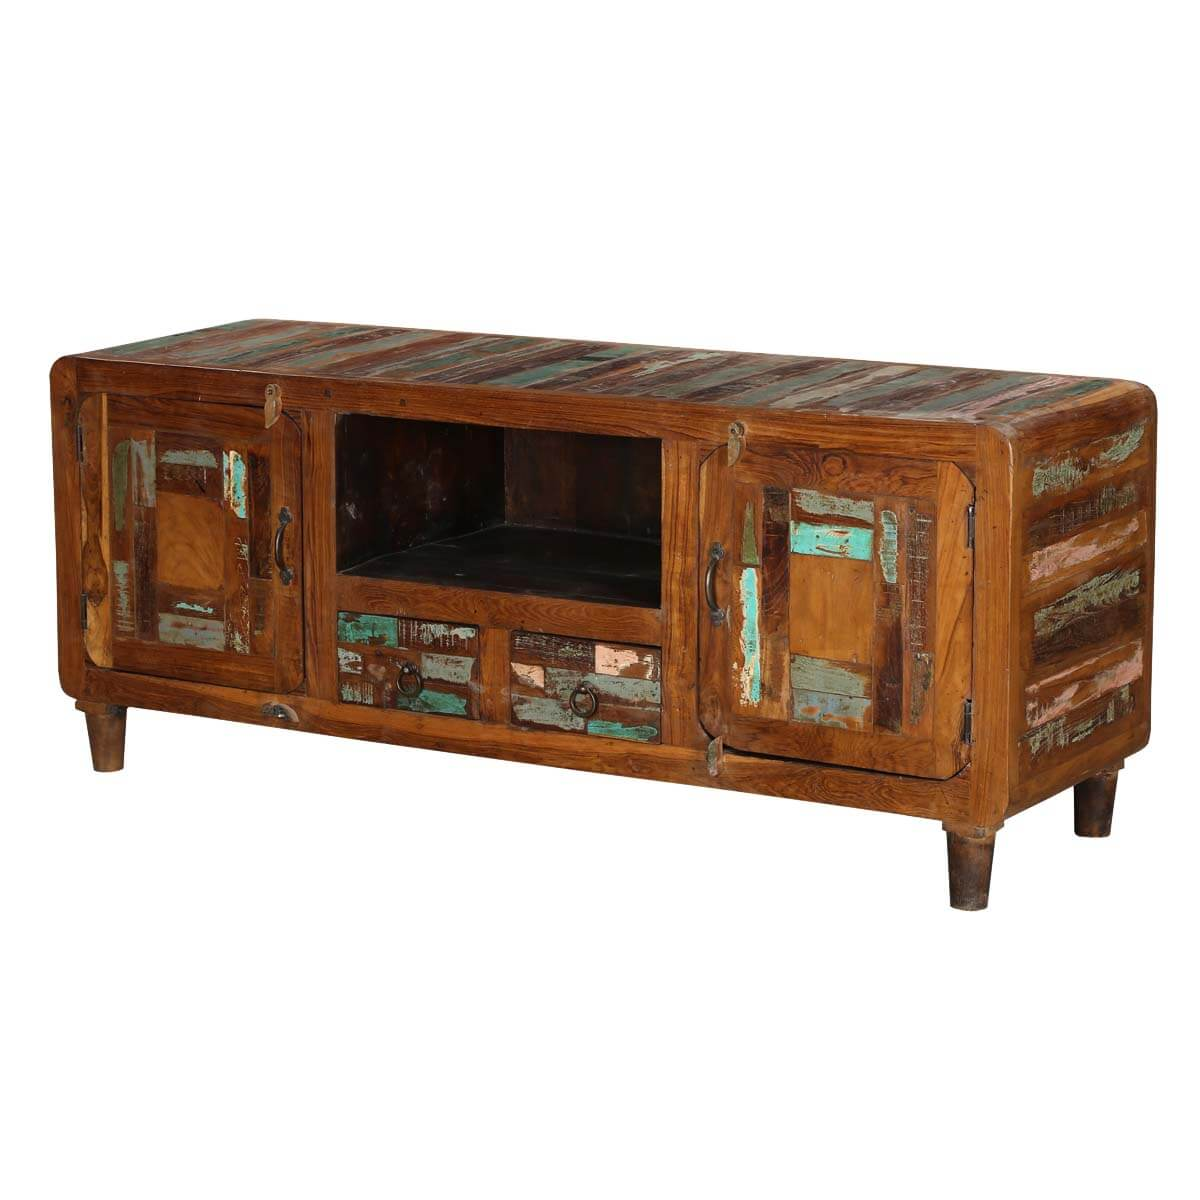 Tangier 59 Mosaic 2-Door Solid Wood Rustic Media Console Furniture